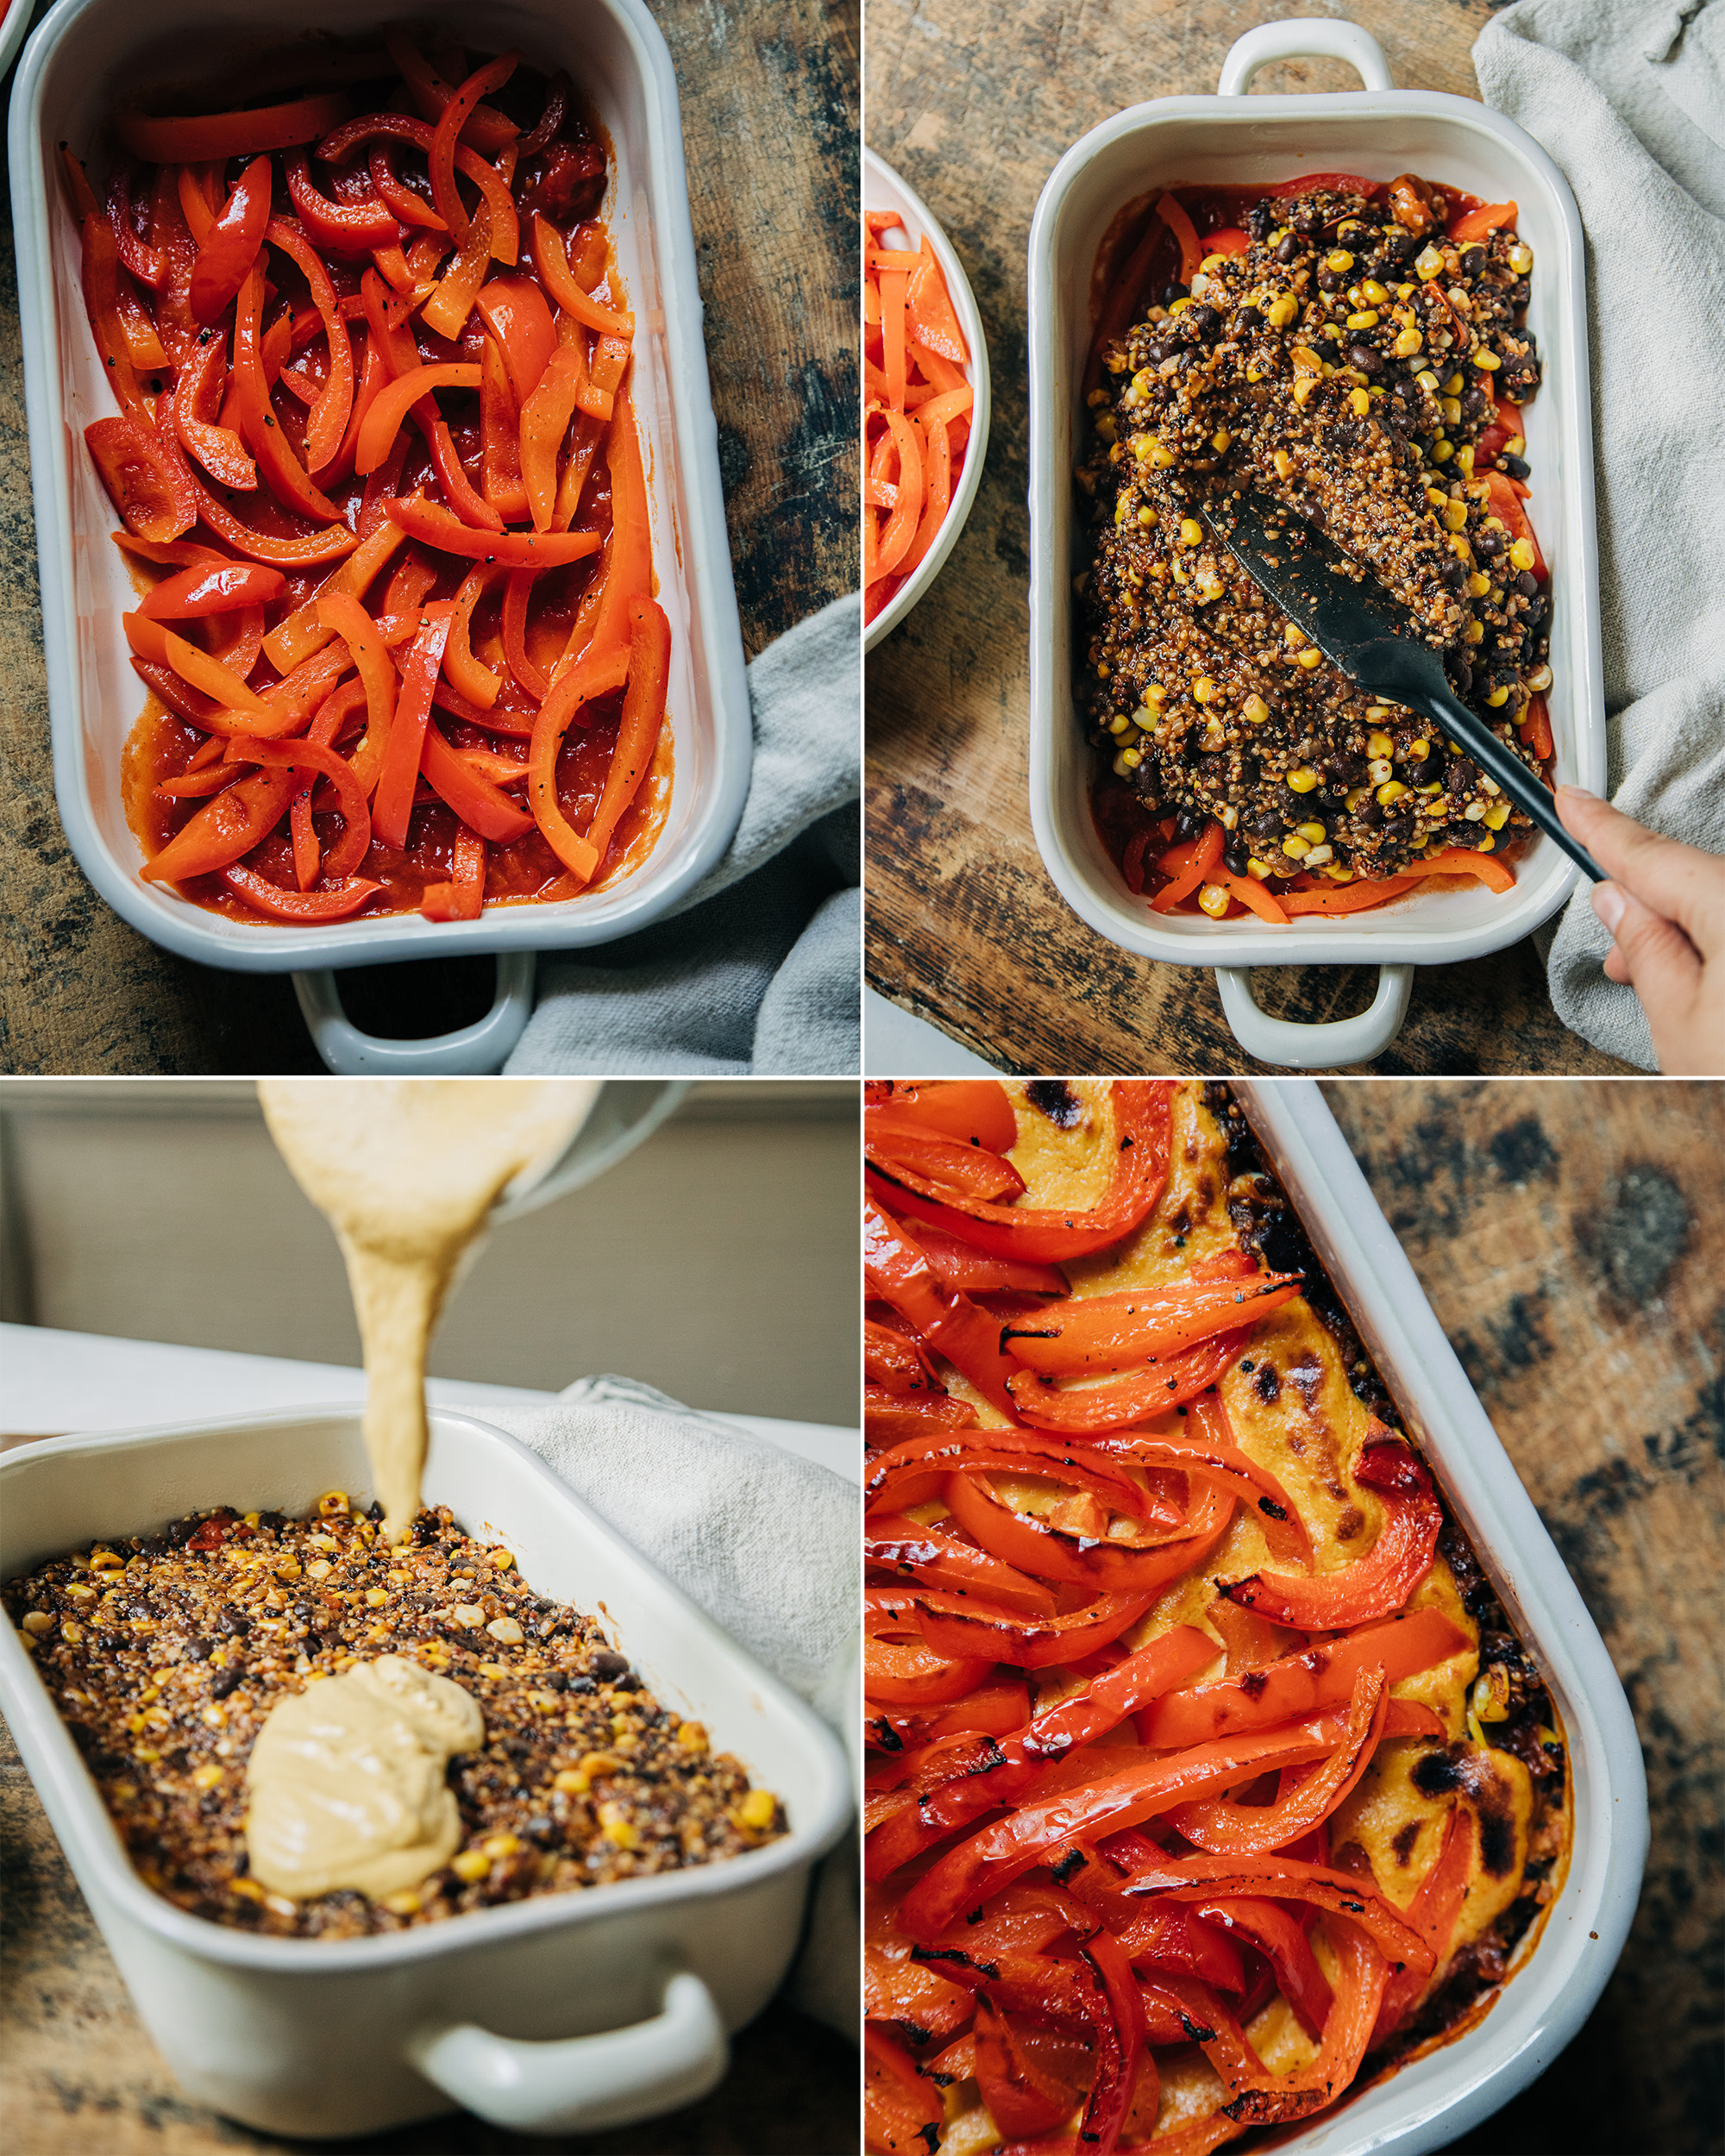 4 images show the layering of a vegan stuffed pepper casserole.